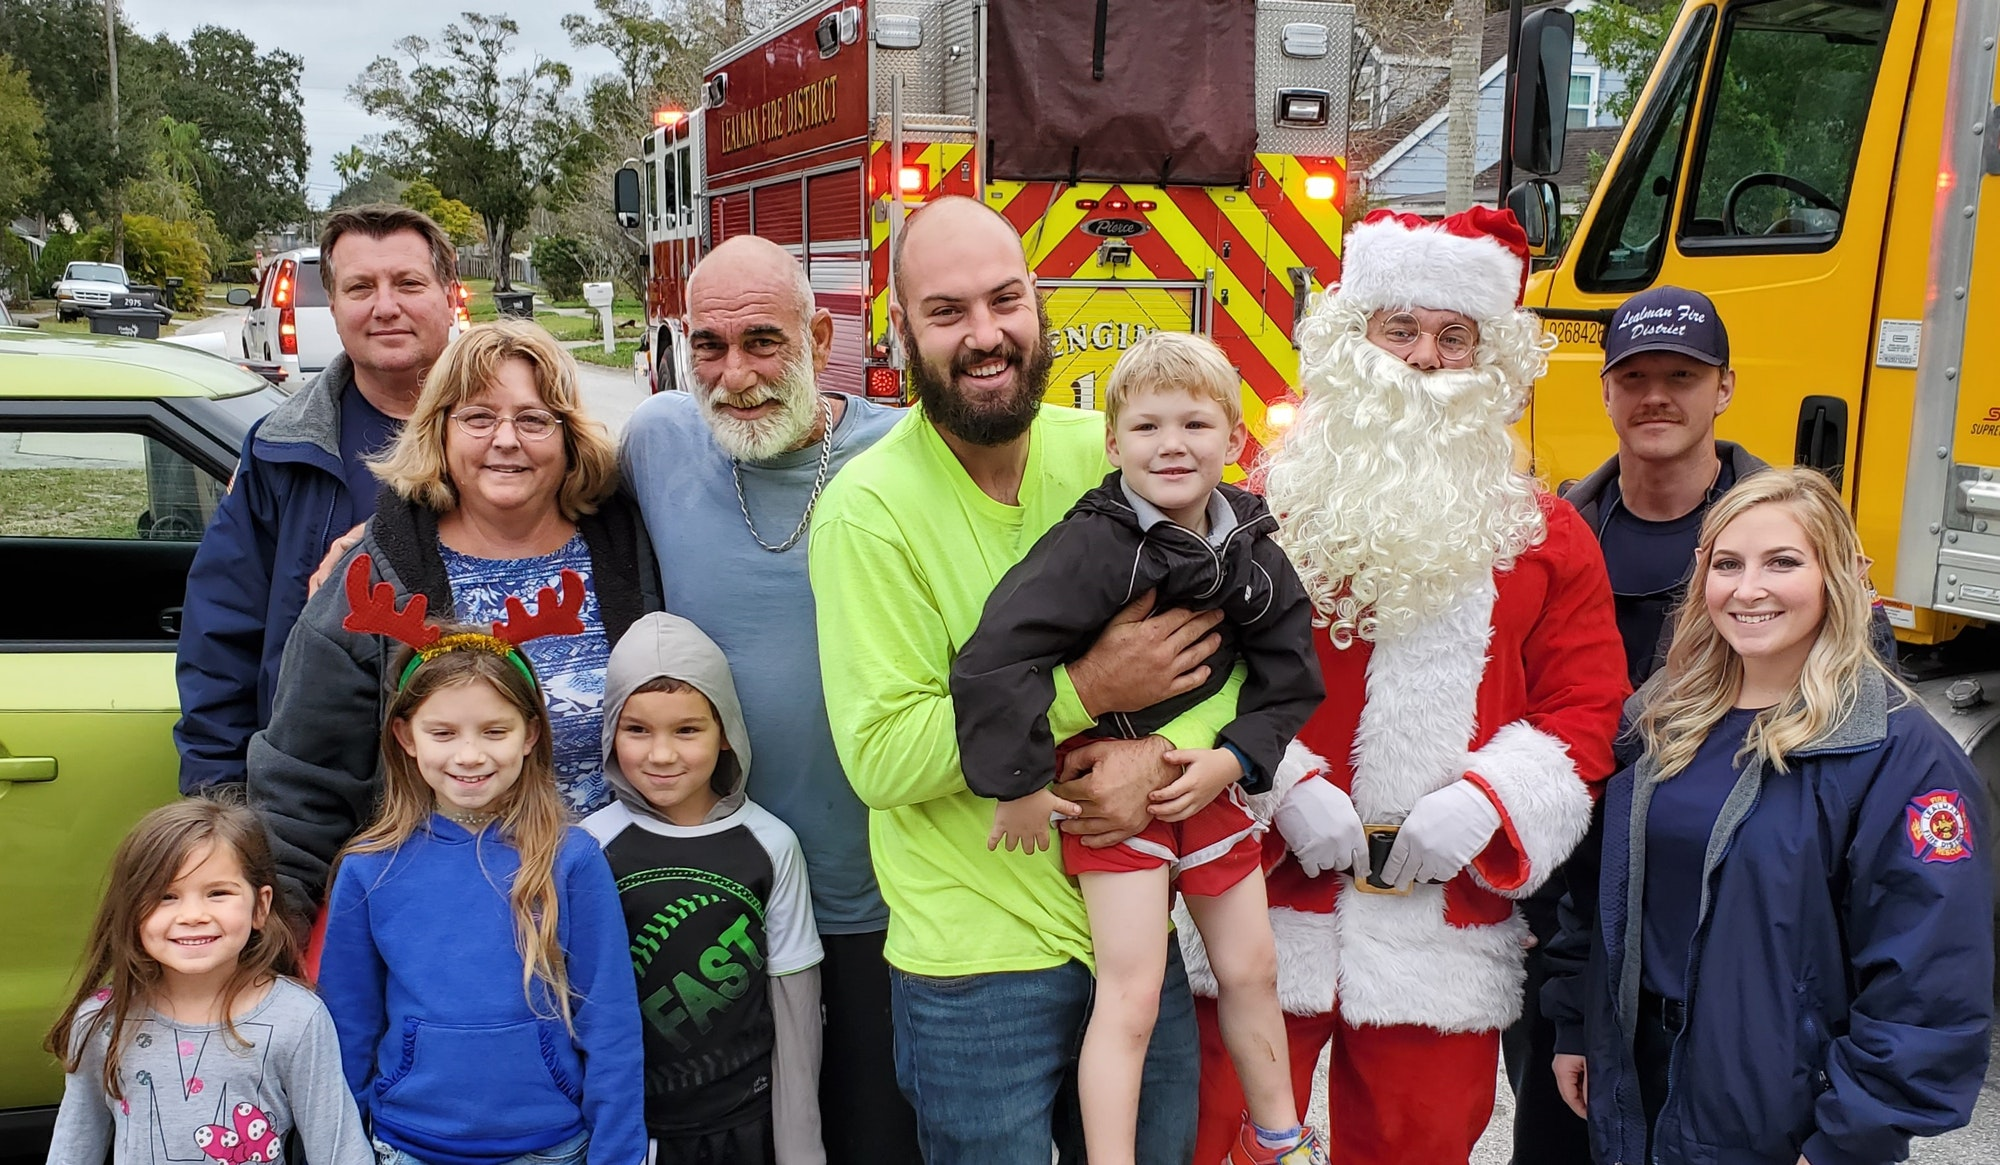 Picture of Santa with family during delivery, smiling kids